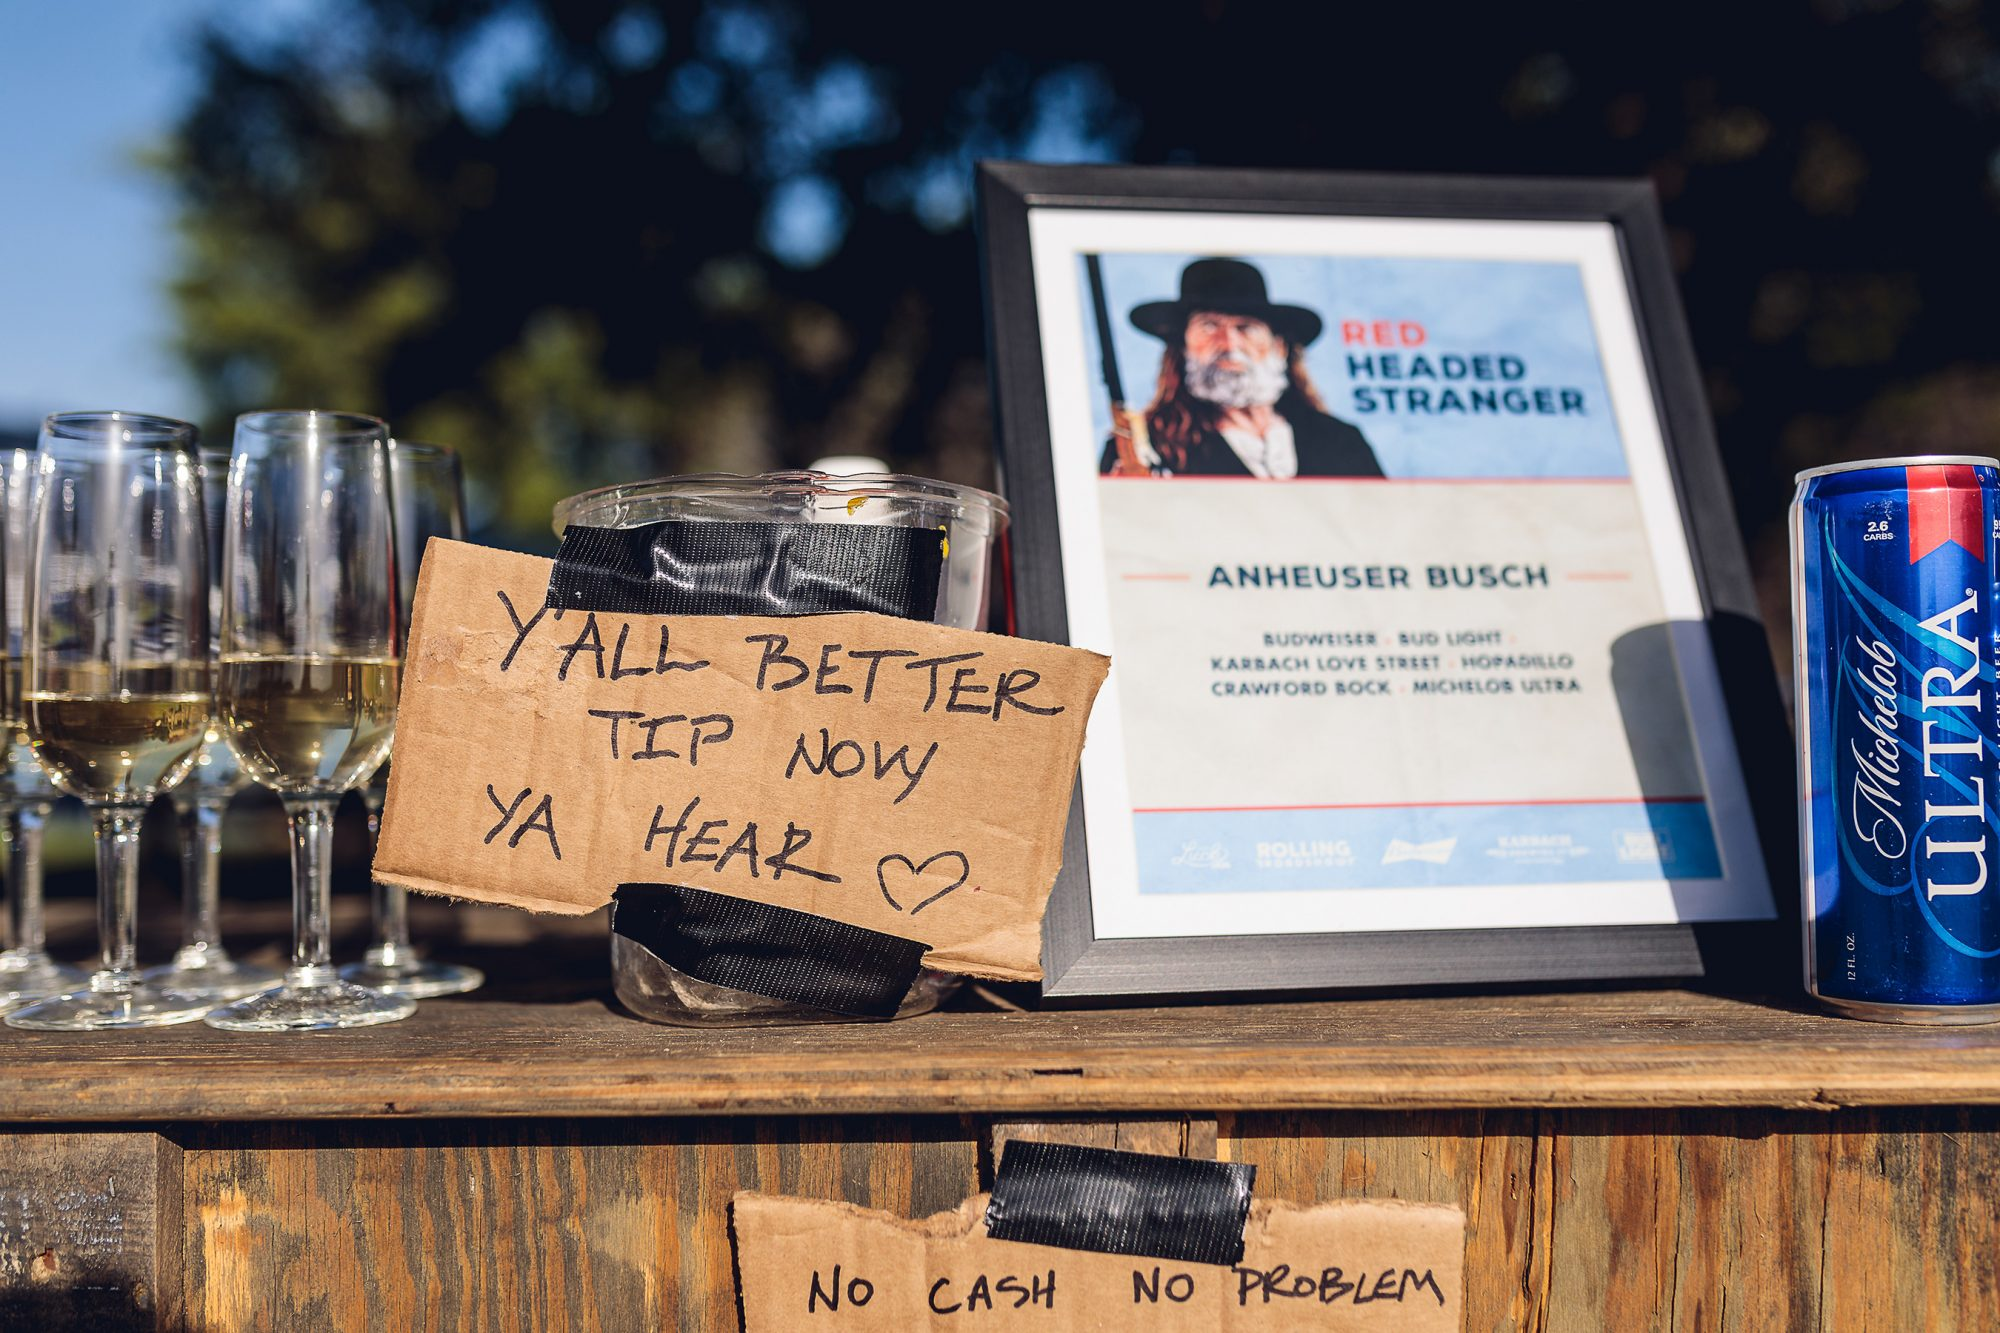 LUCK CINEMA: RED HEADED STRANGER presented by Rolling Roadshow and Luck Productions at Willie Nelson's Luck Texas Ranch